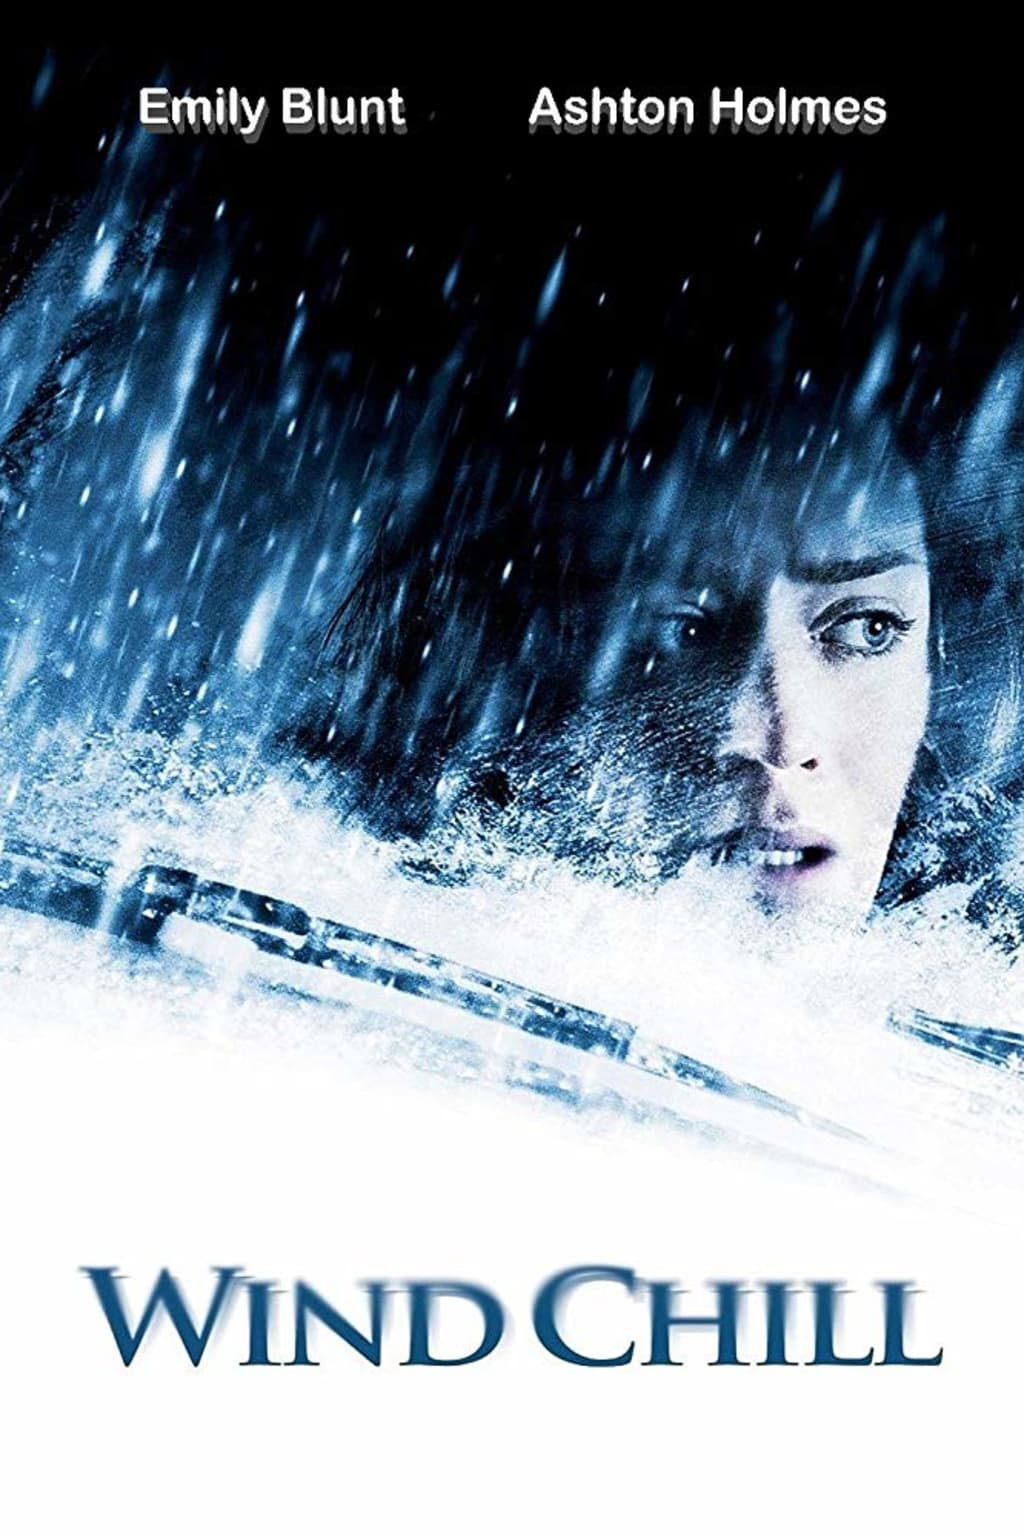 'Wind Chill' - A Movie Review